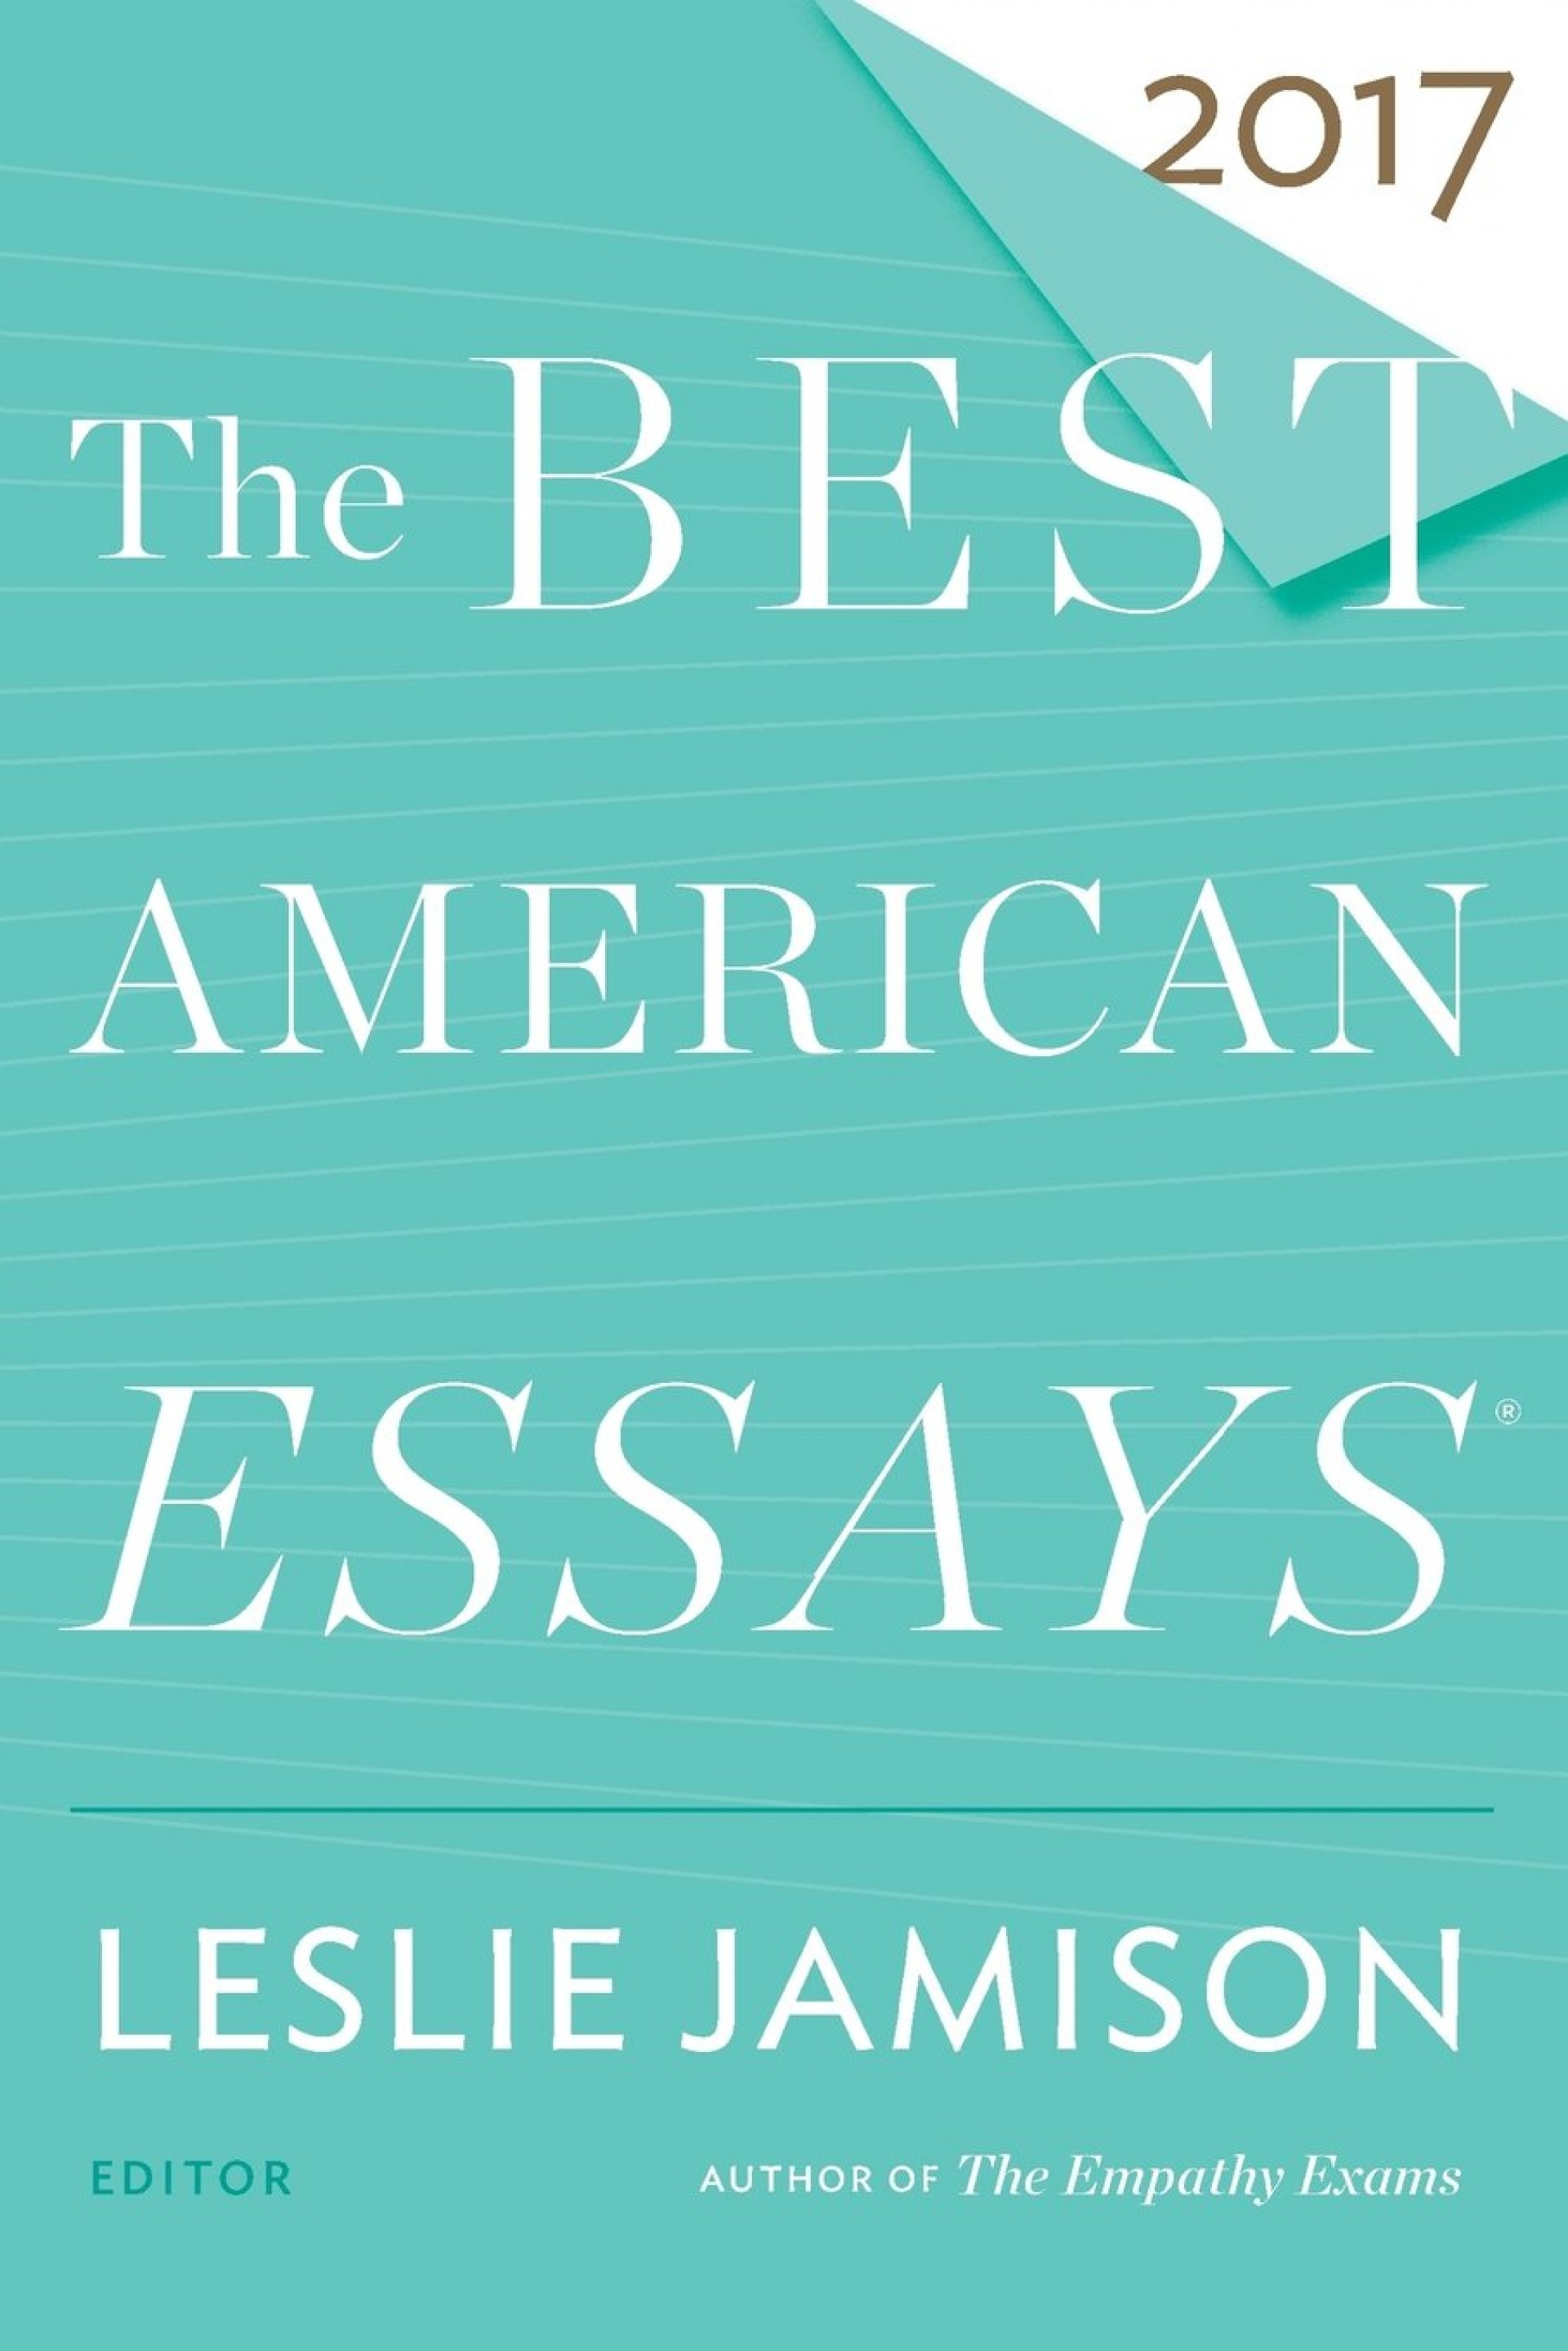 001 61tzl Nruvl Essay Example The Best American Wonderful Essays 2018 List Pdf Download 2017 Free 1920